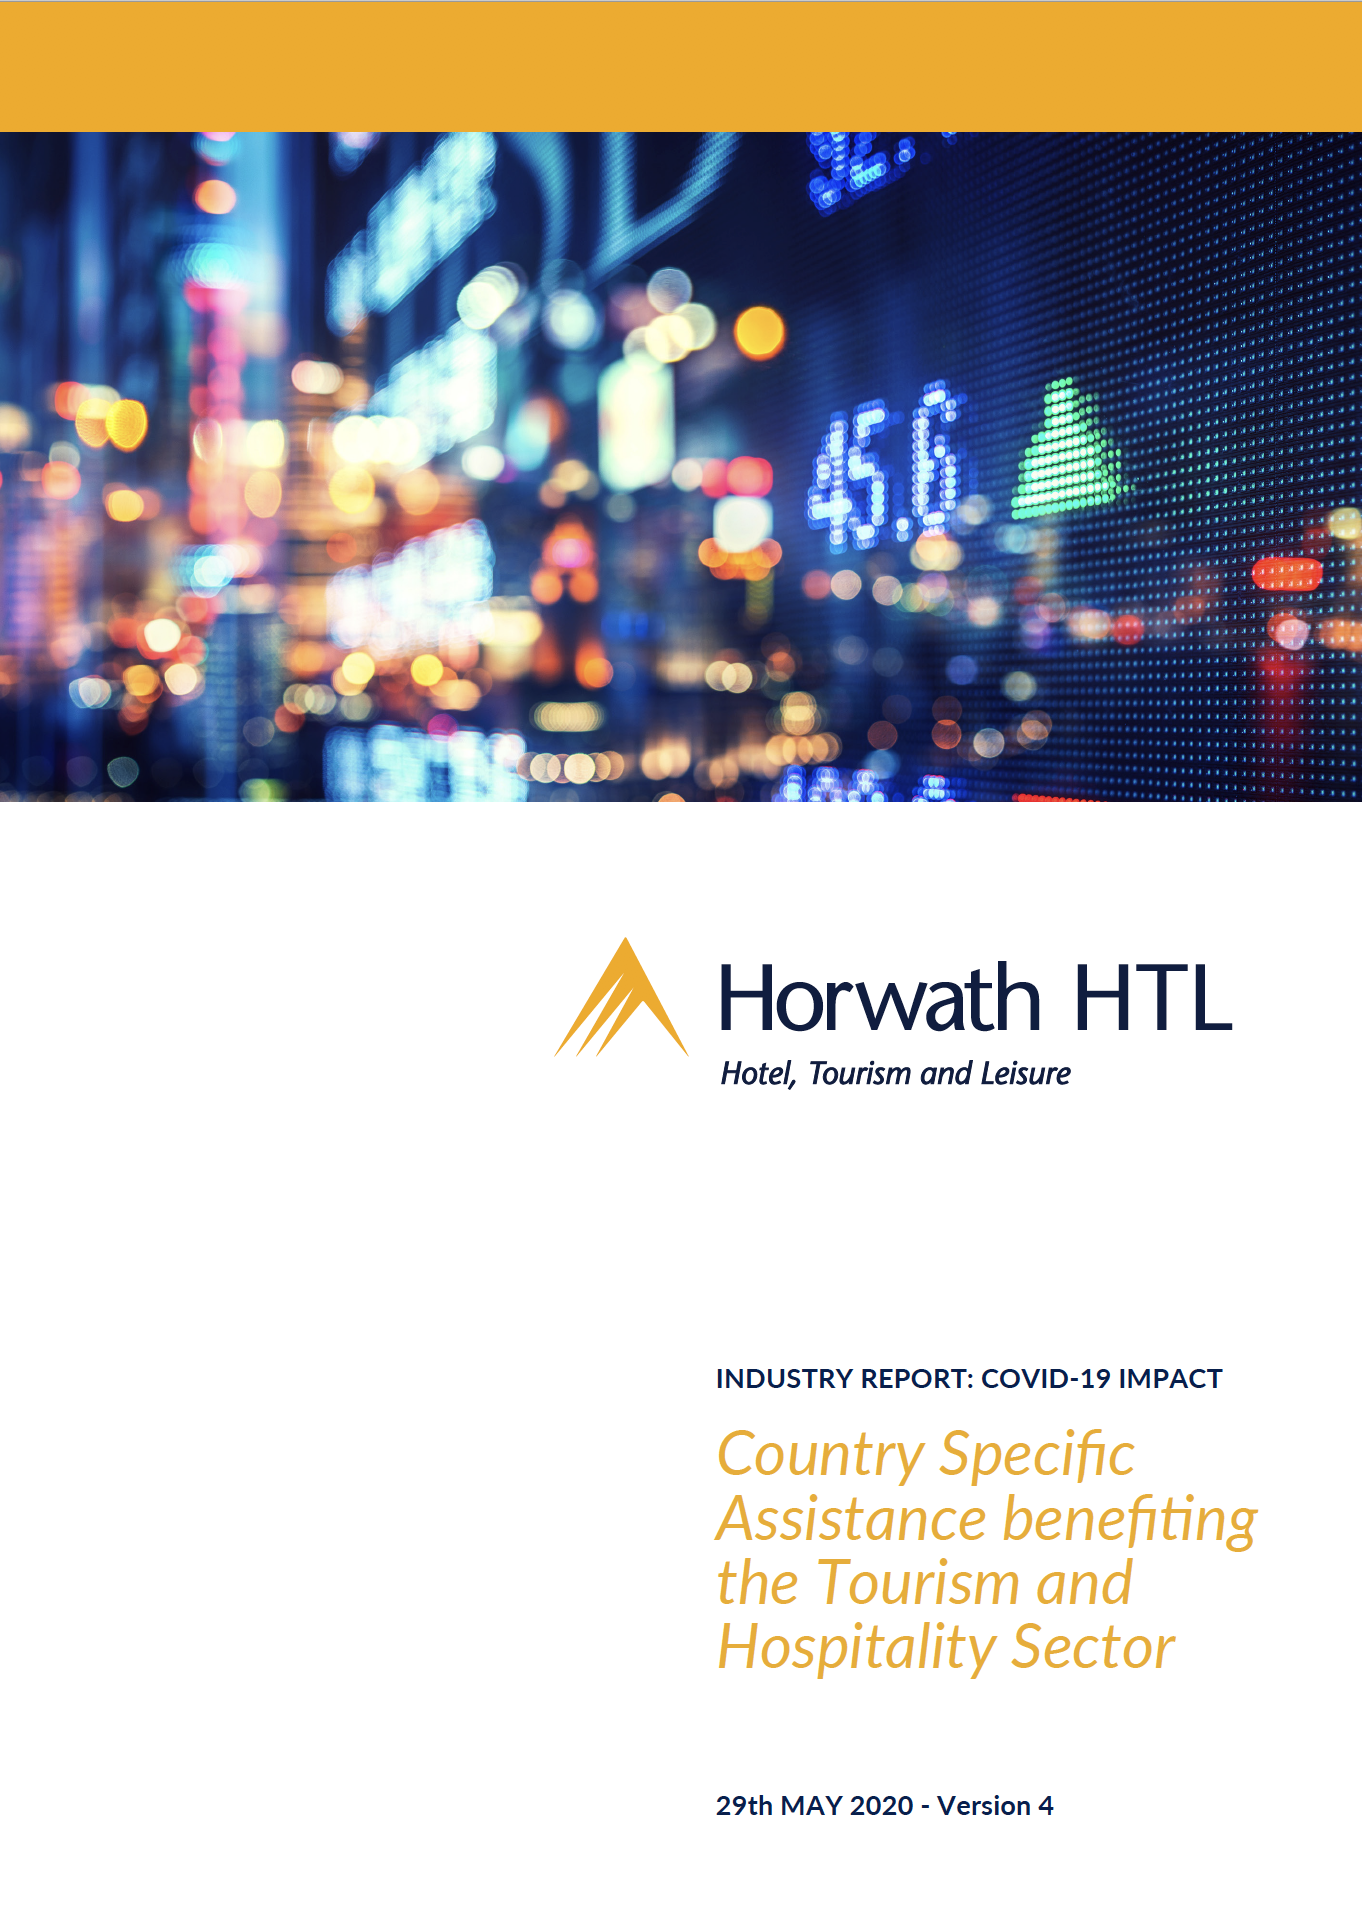 Updated! Tourism & Hospitality Sector Assistance (V.4)